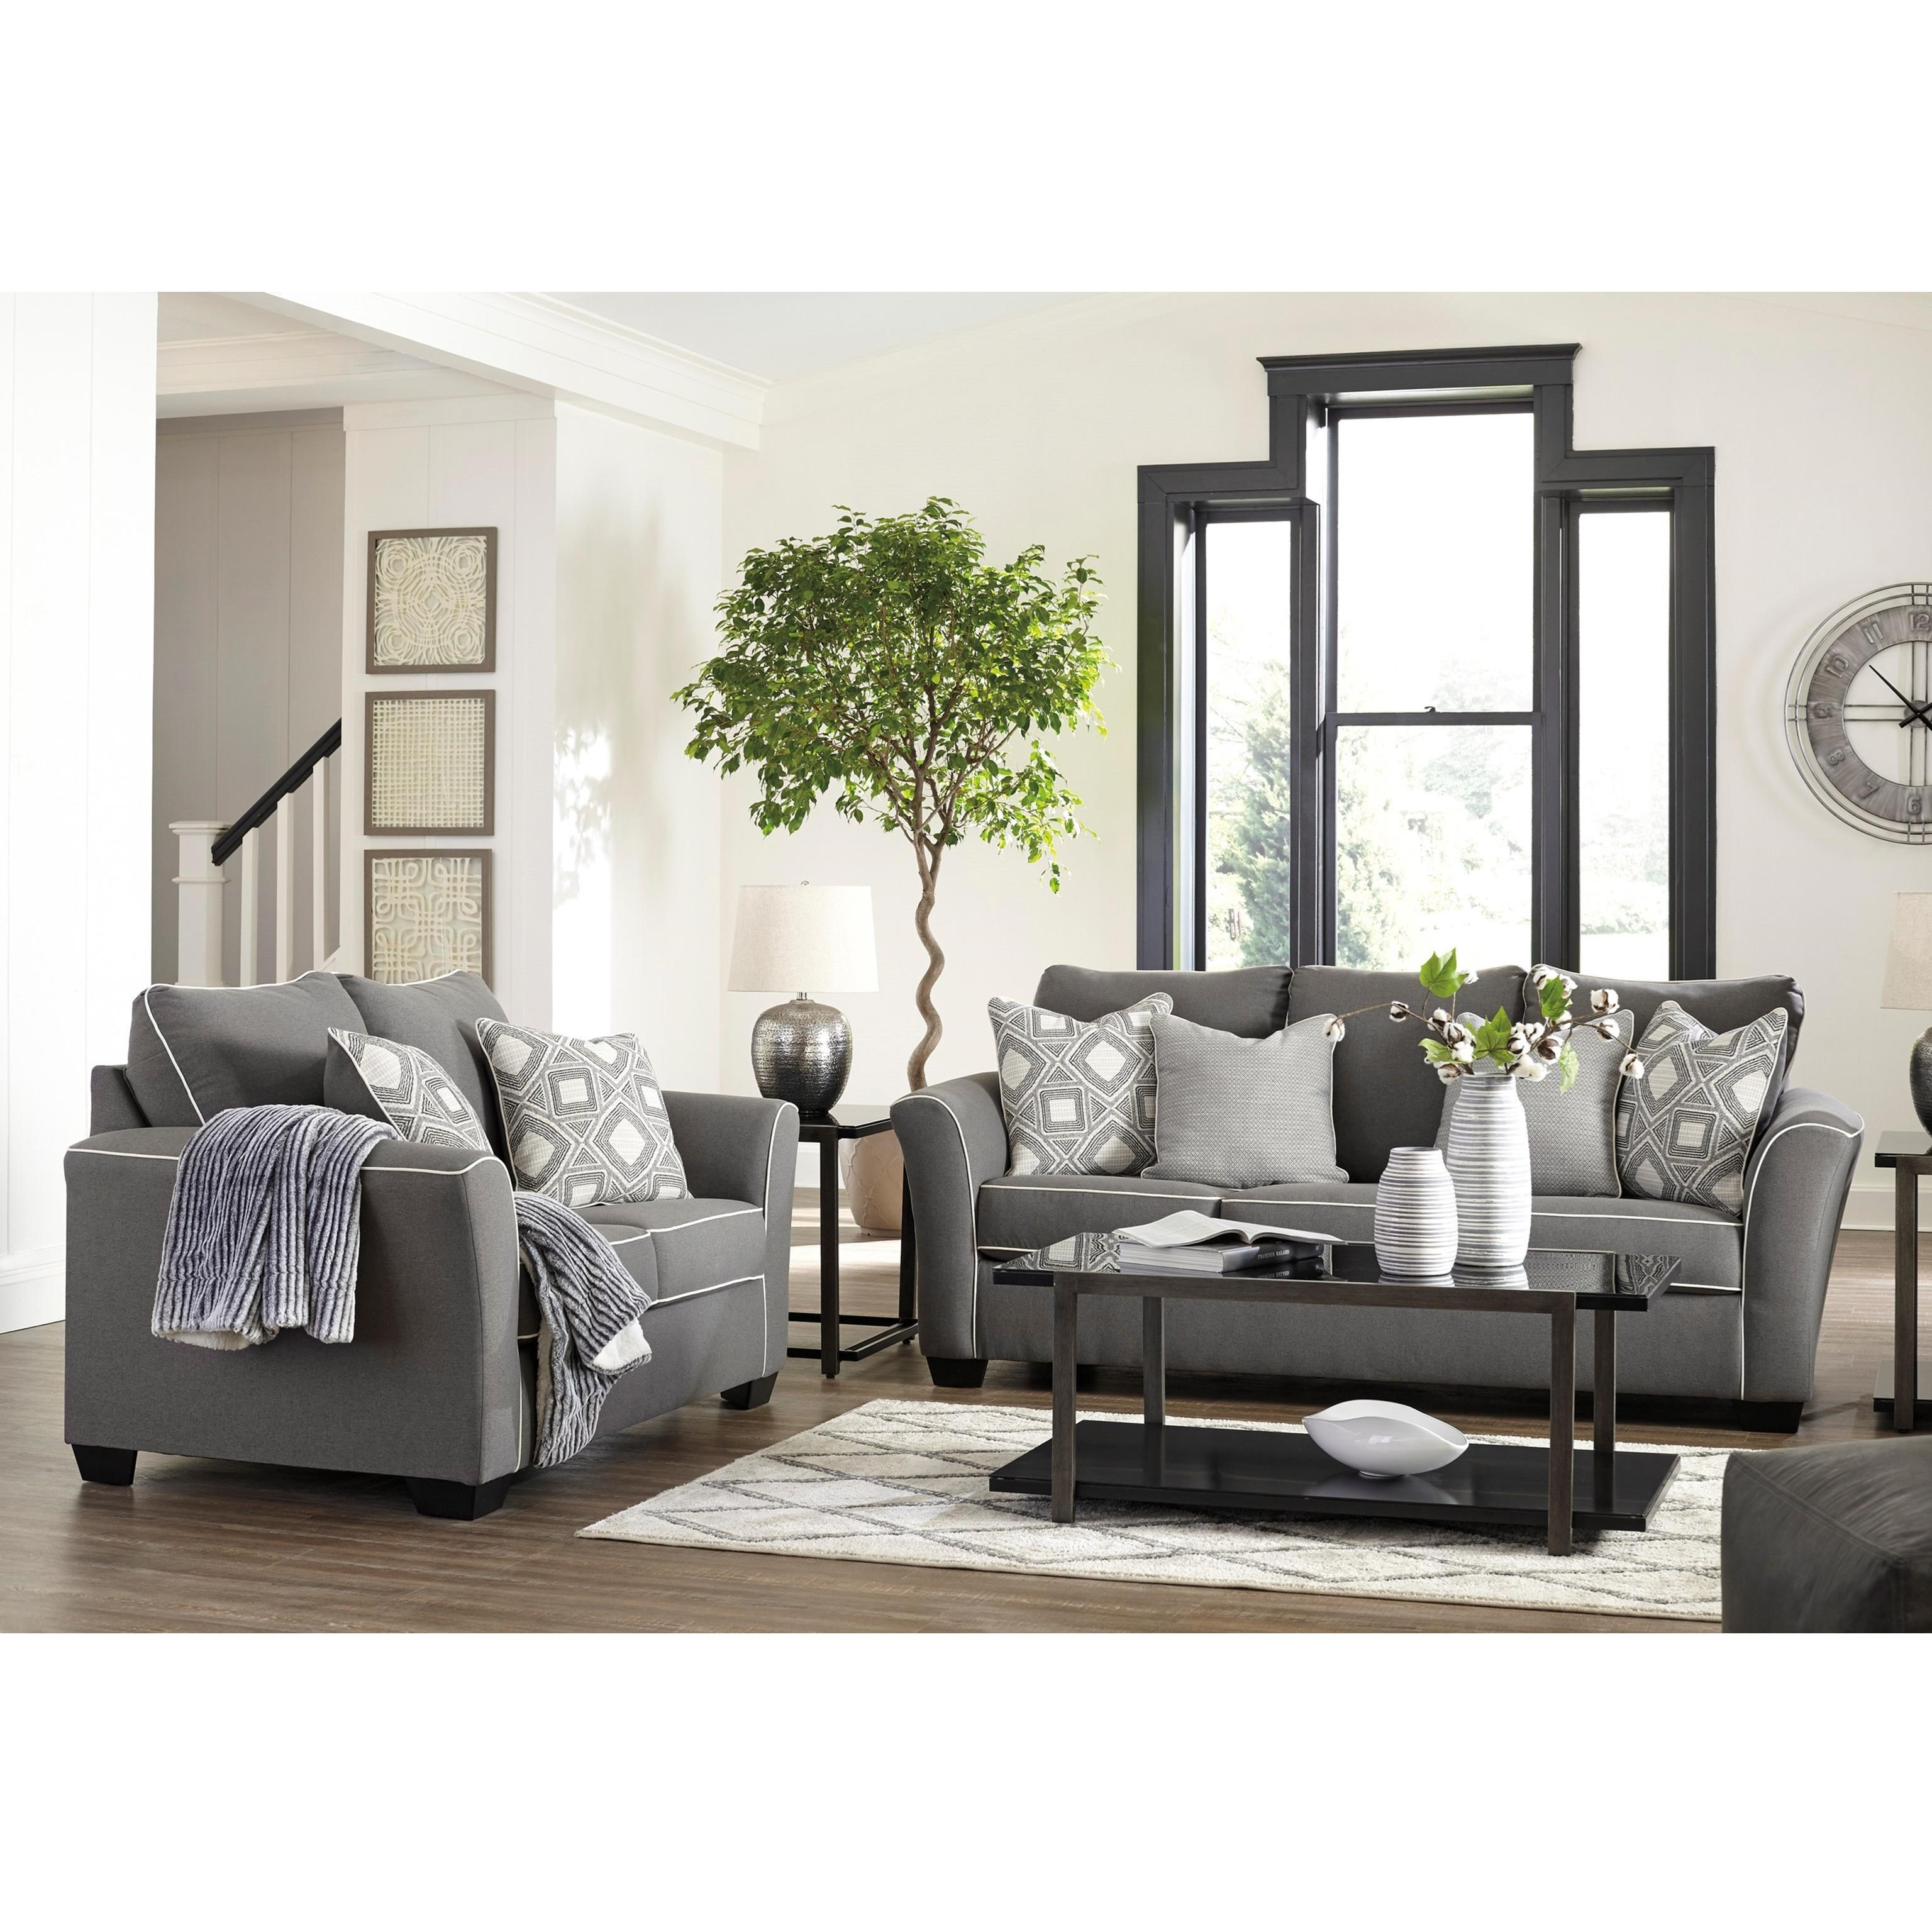 Domani Stationary Living Room Group by Signature Design by Ashley at Northeast Factory Direct